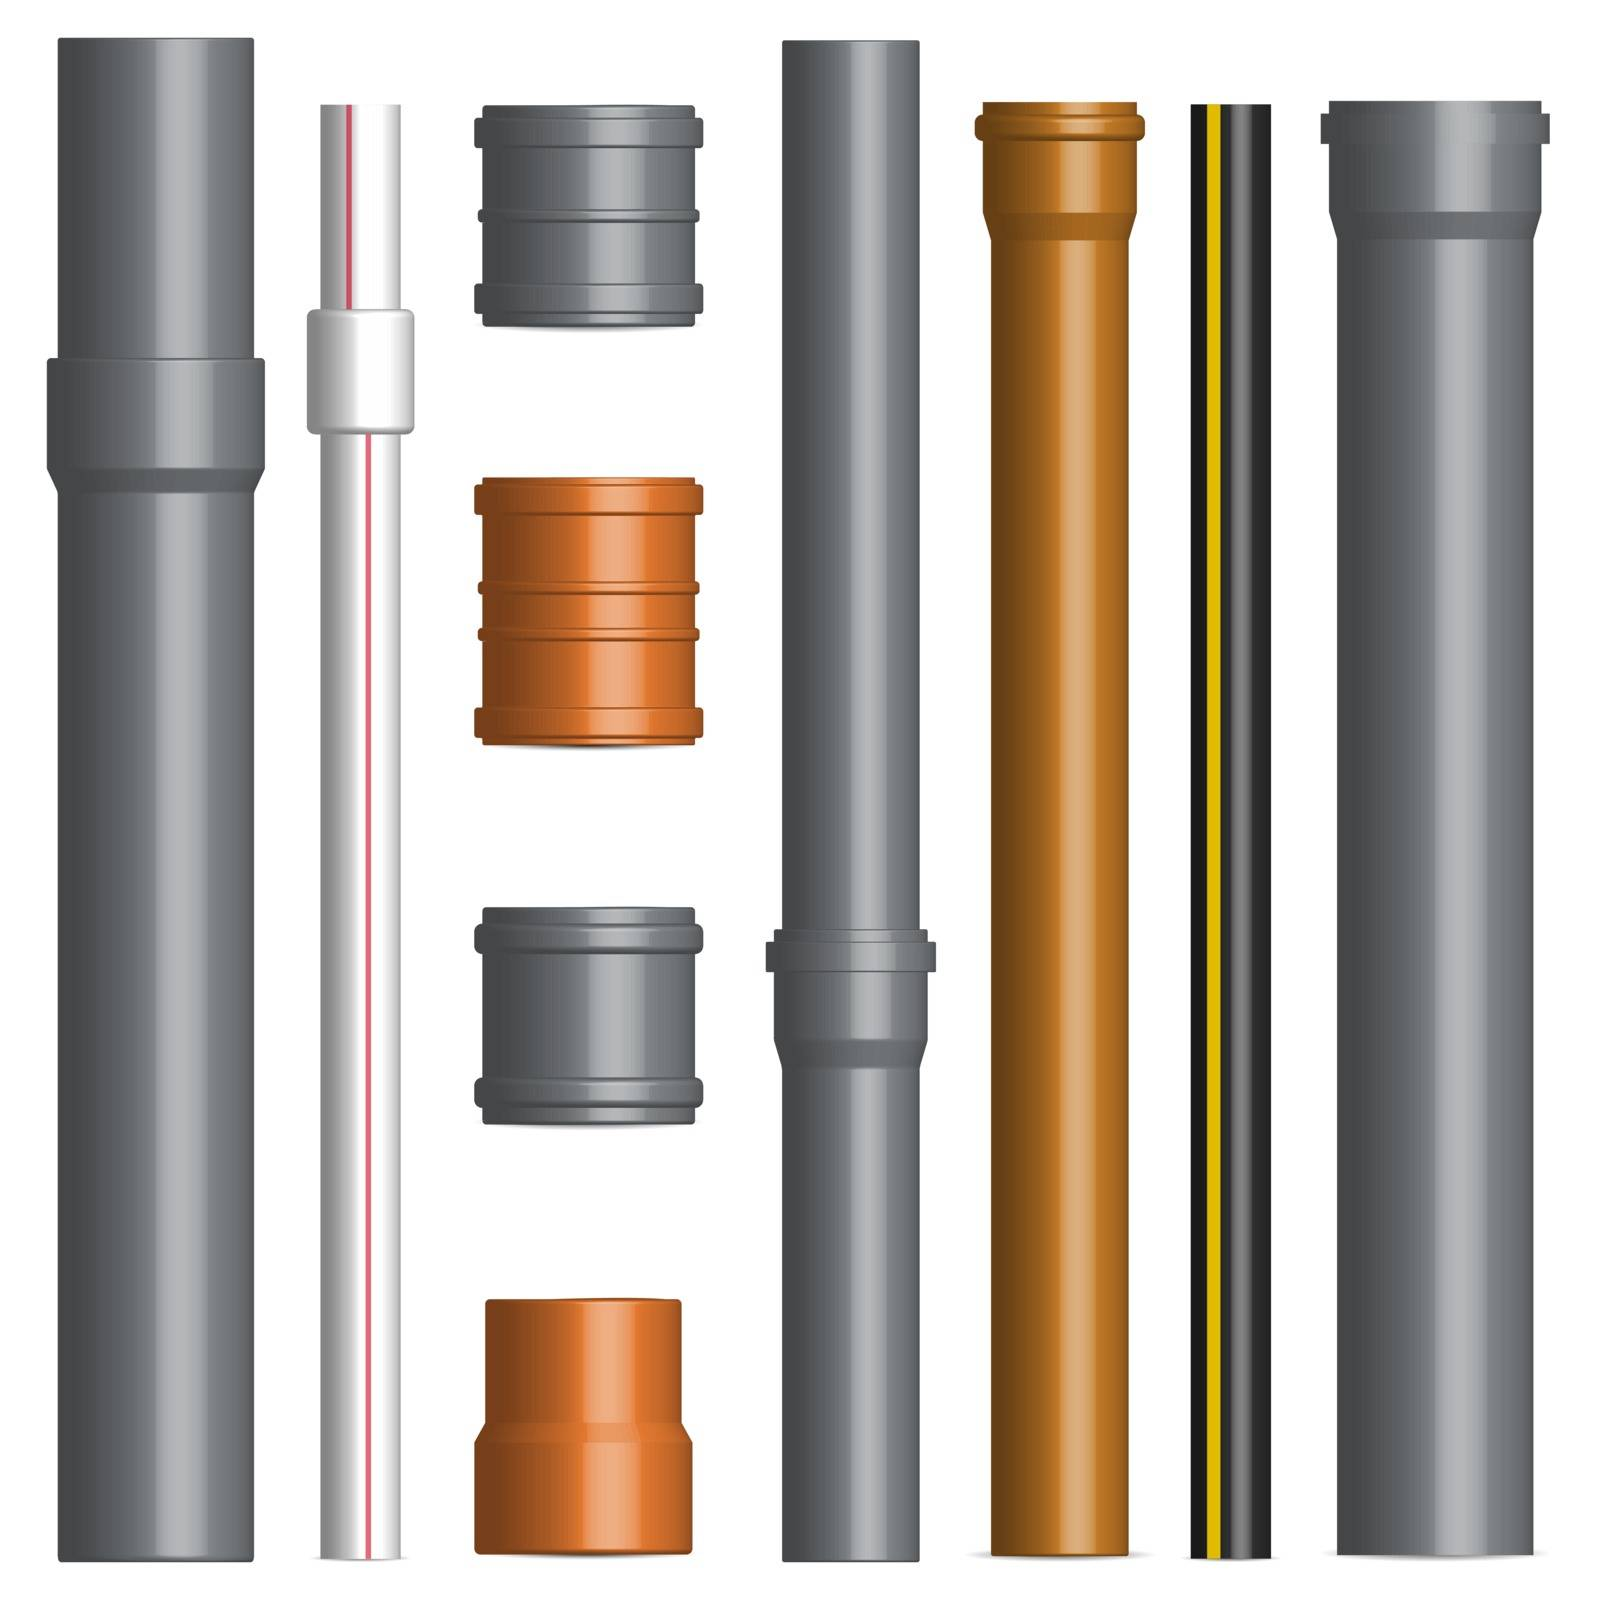 Set of various plastic pipes for sewage, water pipe with connecting flanges isolated on a white background. Front view, vector illustration.